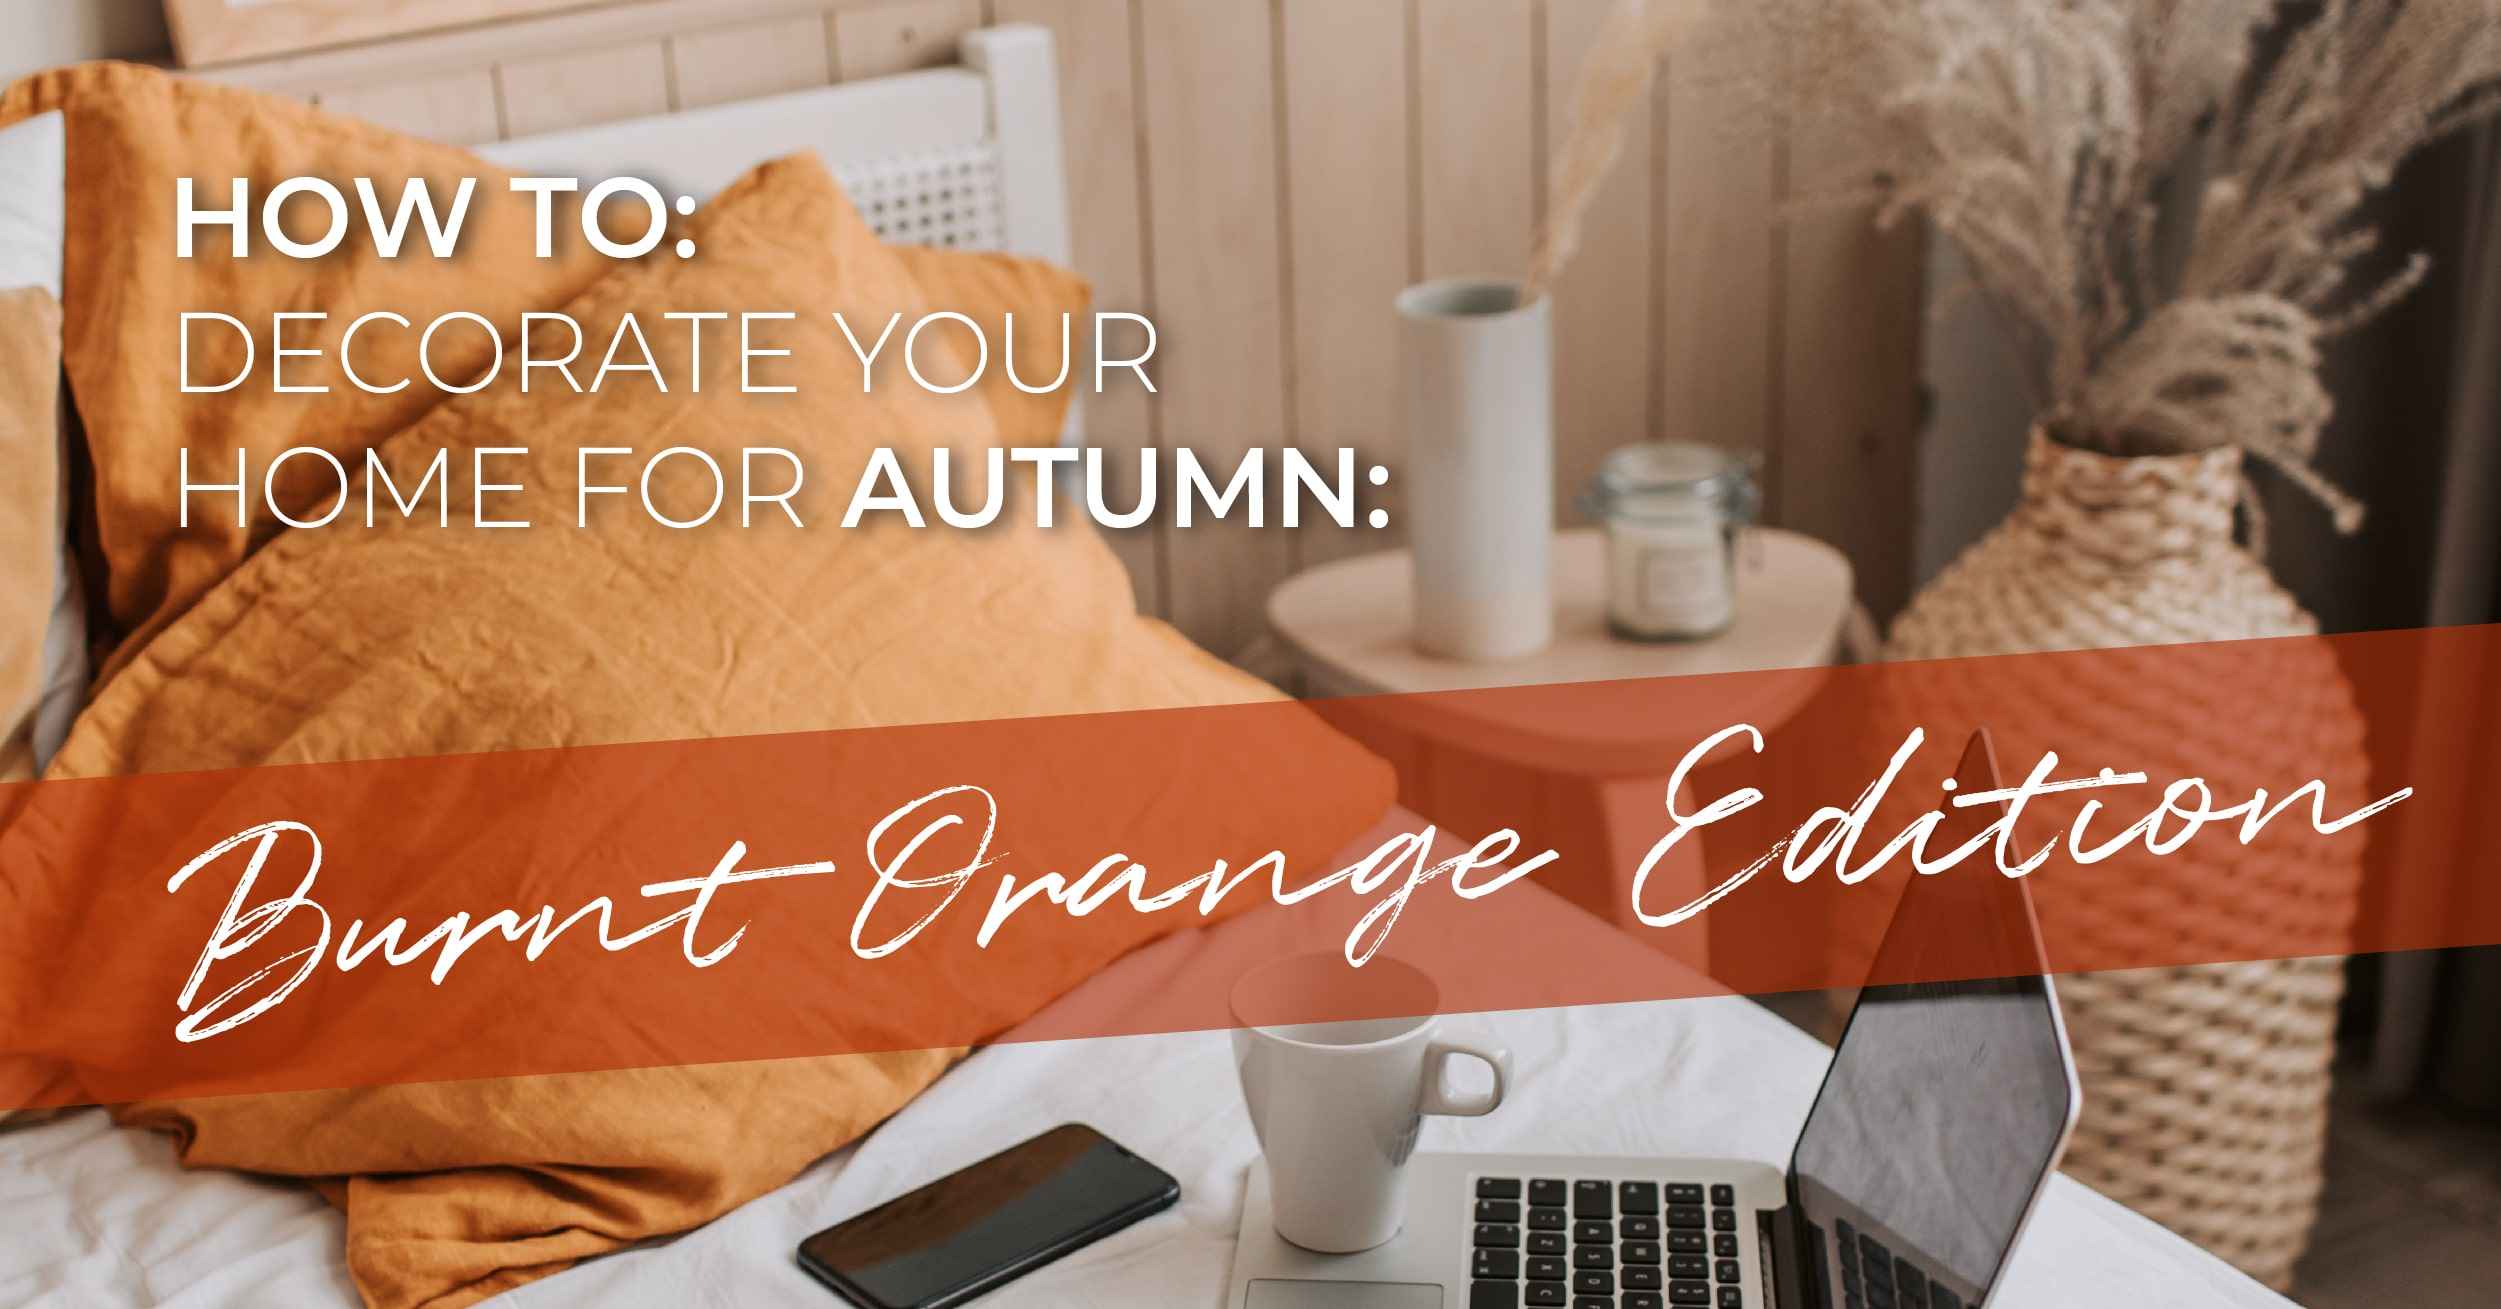 how-to-decorate-your-home-for-autumn-with-burnt-orange